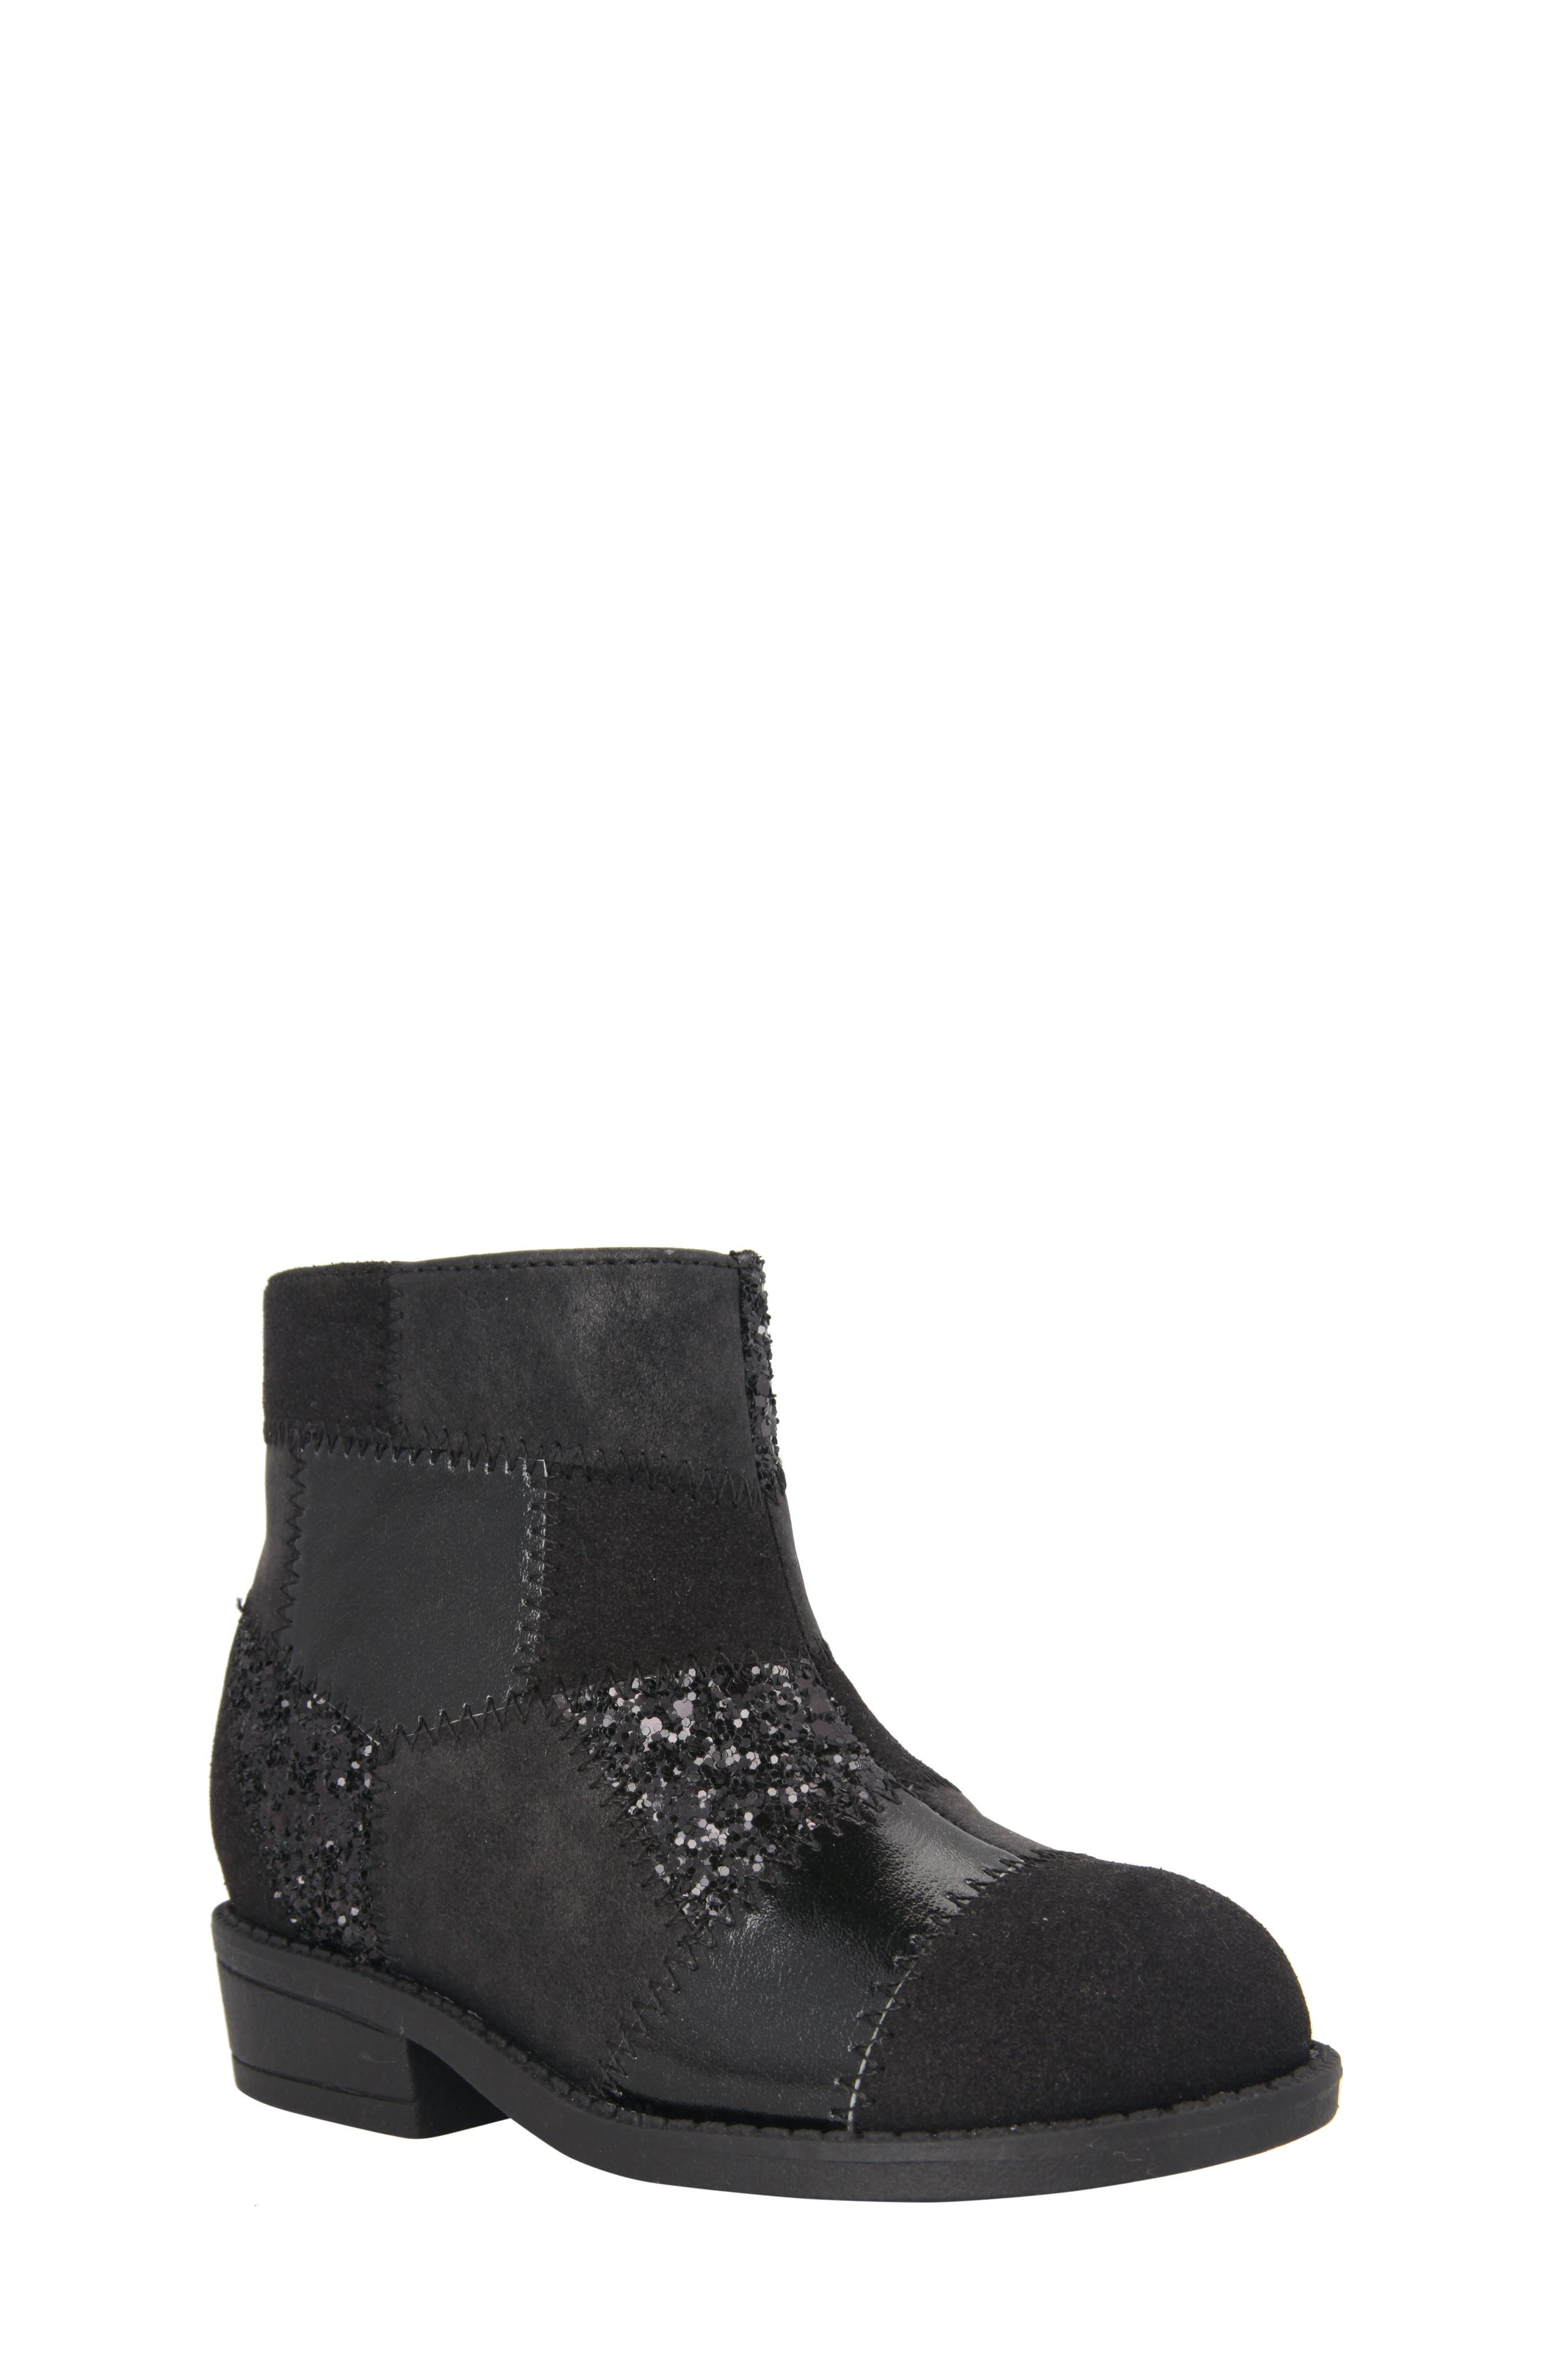 Ines Glittery Patchwork Bootie,                             Main thumbnail 1, color,                             Black Metallic/ Black Glitter